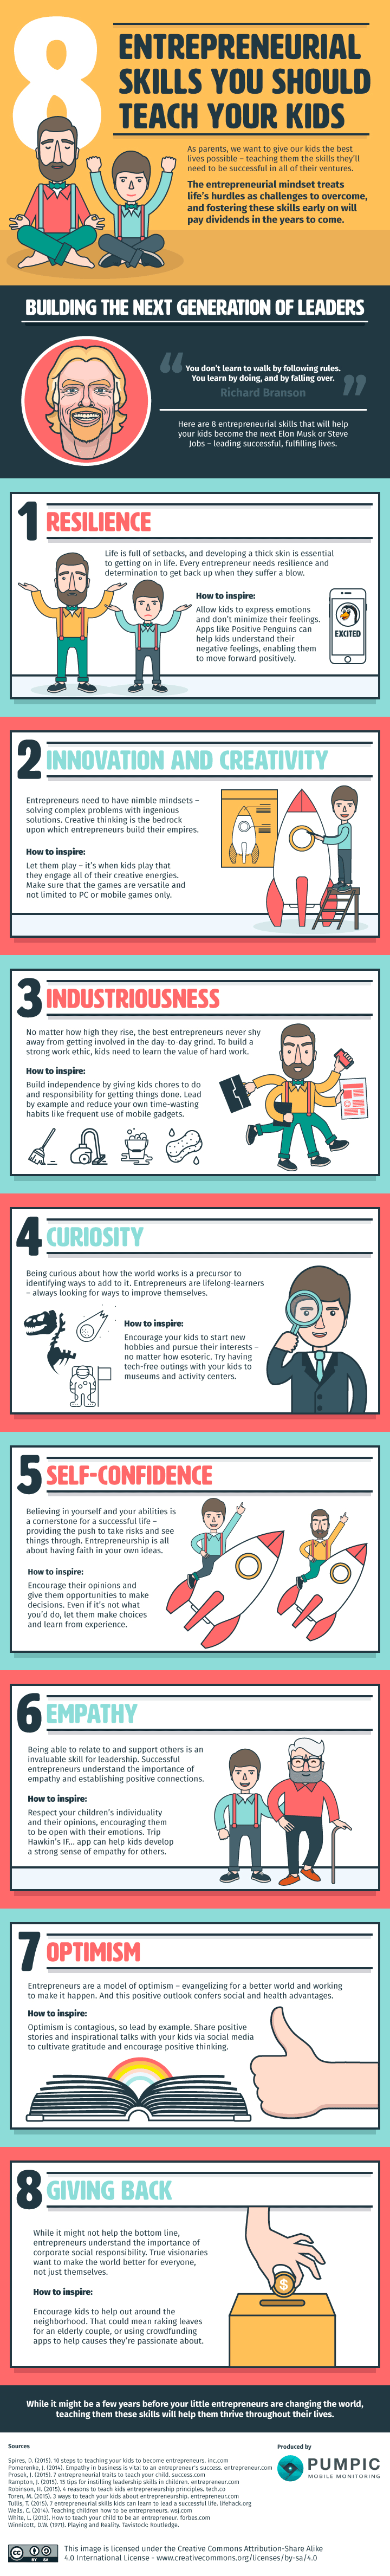 8 Entrepreneurial Skills you Should Teach your Kids #infographic